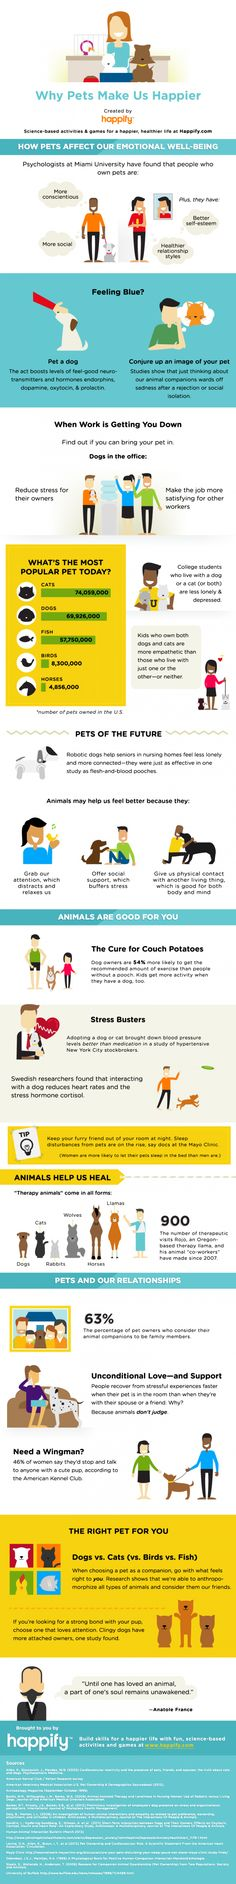 pets_happiness.  Why Pets Make Us Happy By Sharla | source: happify.com Jul 3rd, 2016